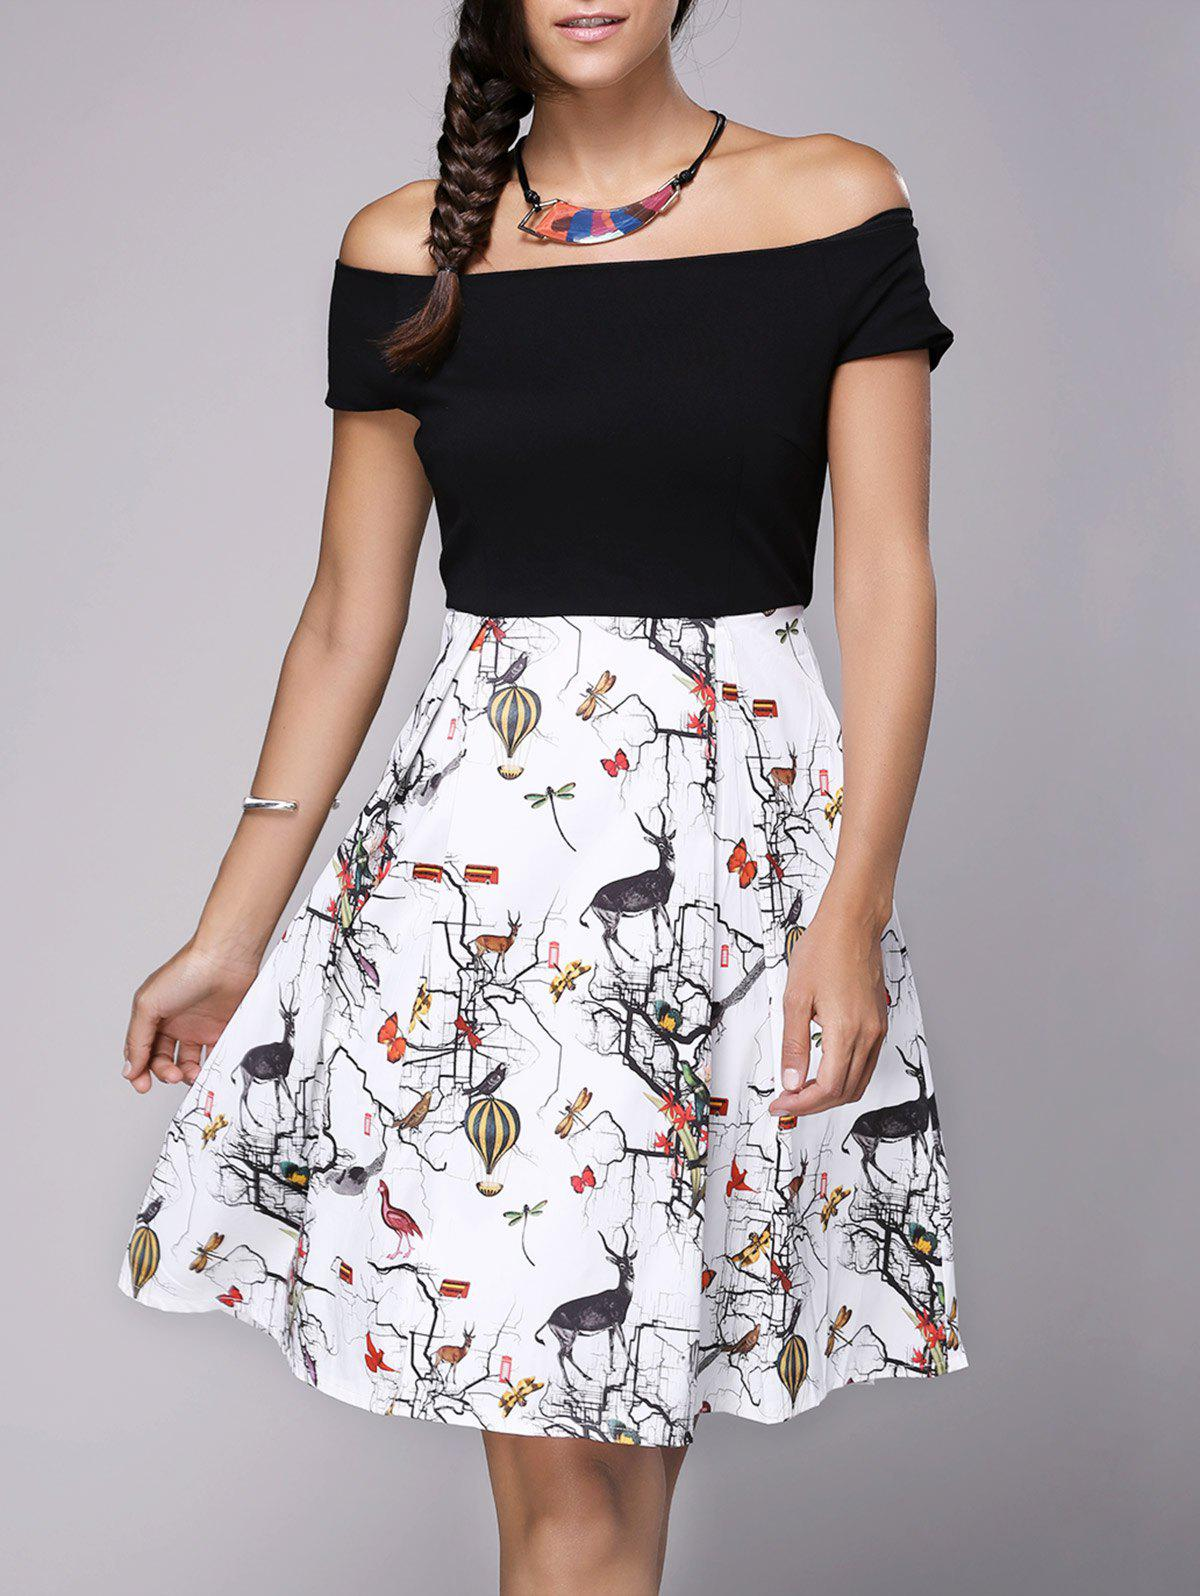 Stylish Women's Off The Shoulder Print Flare Dress - WHITE/BLACK ONE SIZE(FIT SIZE XS TO M)